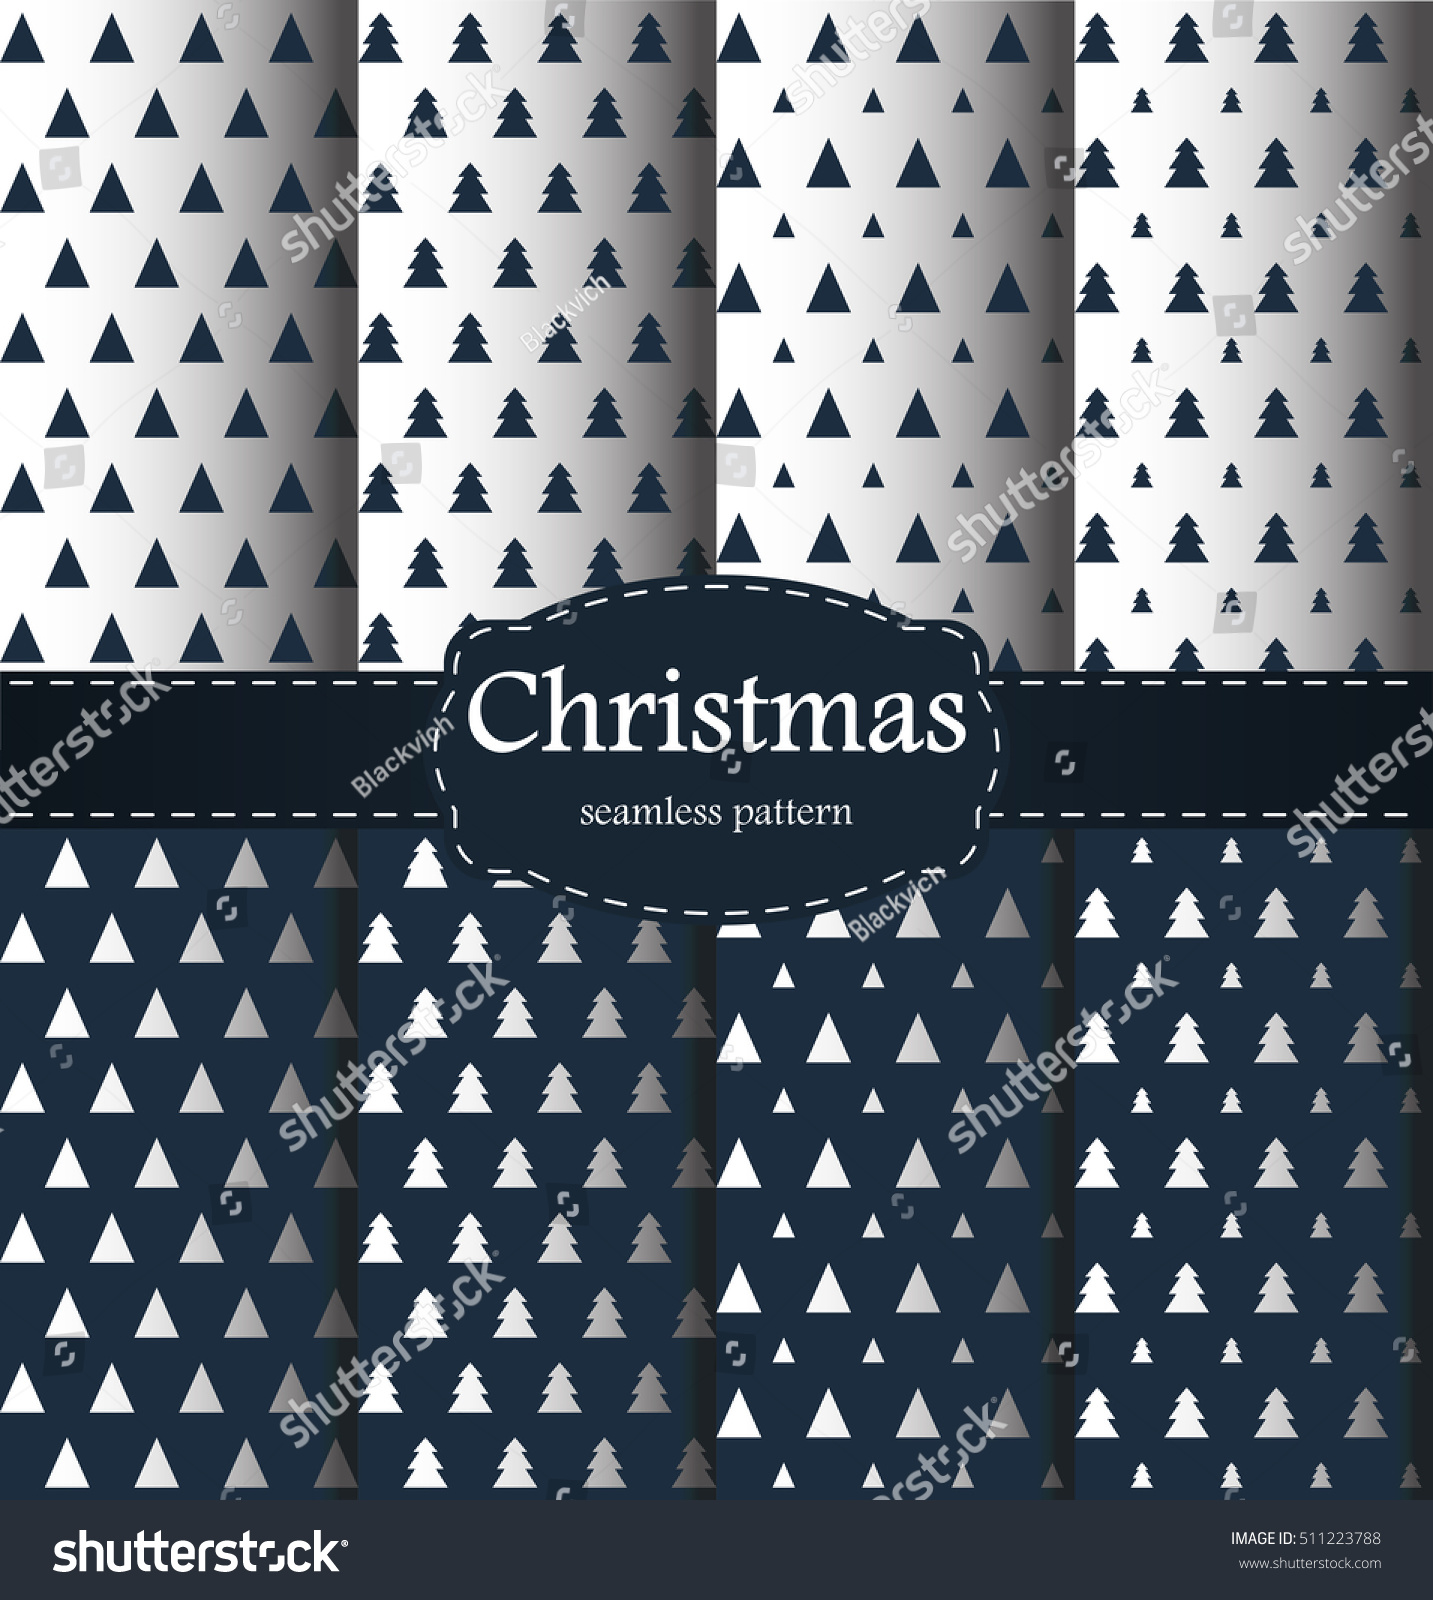 Pics photos merry christmas argyle twitter backgrounds - Christmas Pattern Merry Christmas And Happy New Year White And Blue Seamless Backgrounds